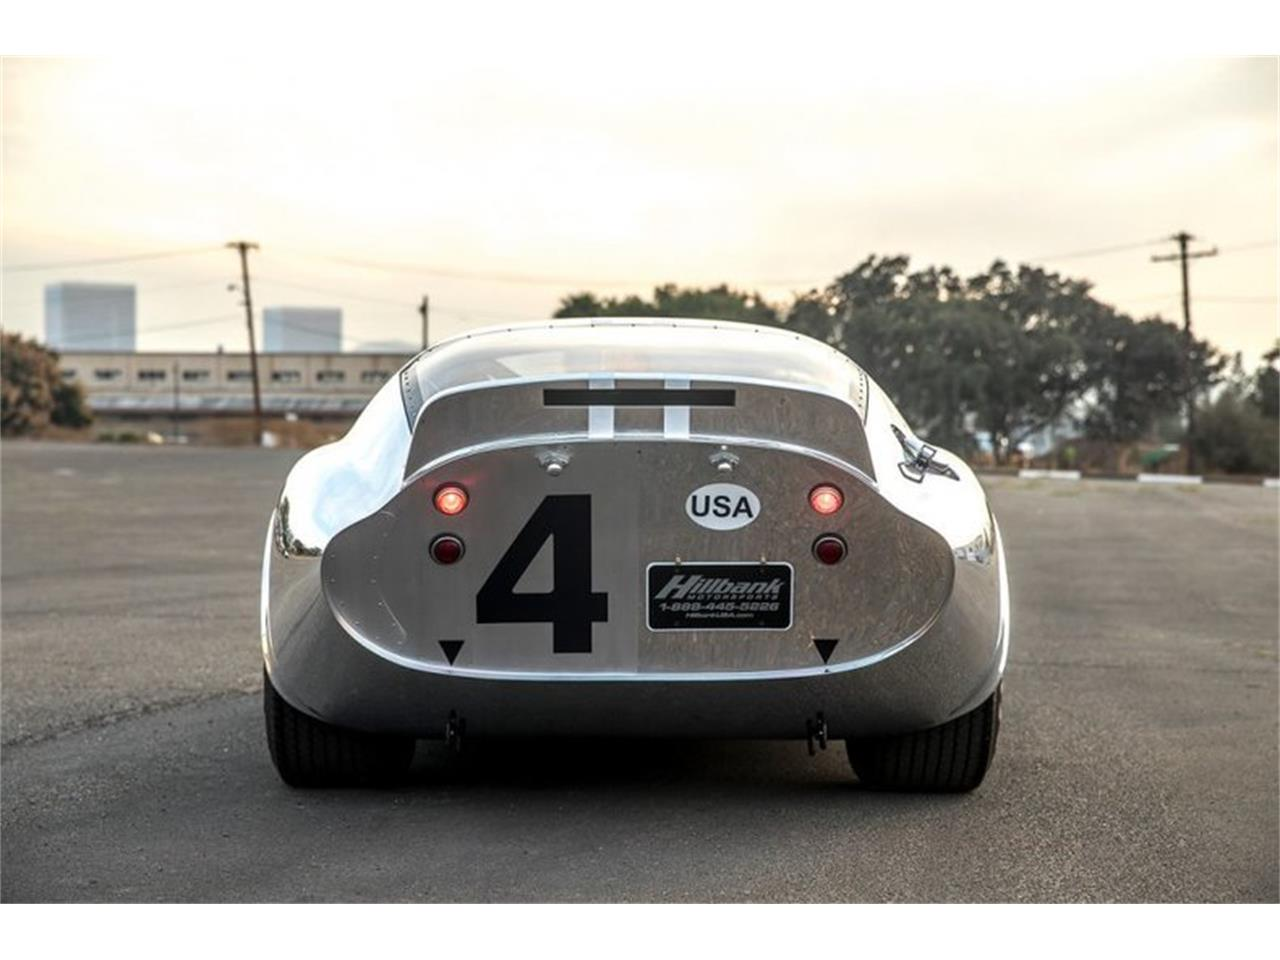 Large Picture of Classic 1900 Superformance Cobra Offered by Hillbank Motorsports - PNUV